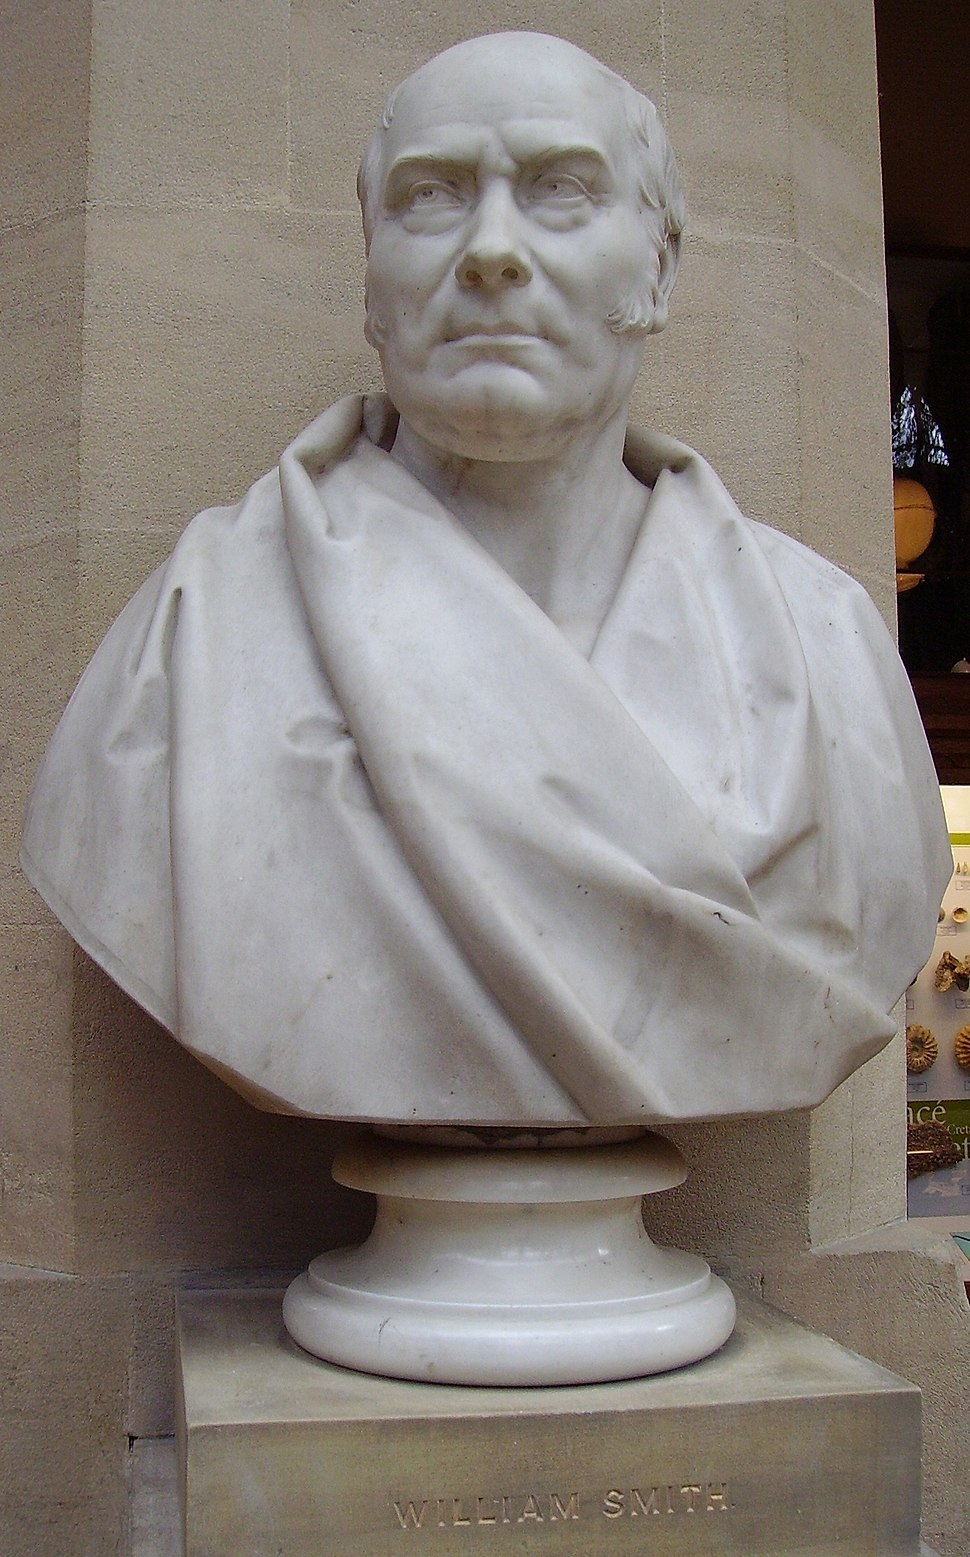 Bust of William Smith, Oxford University Museum of Natural History